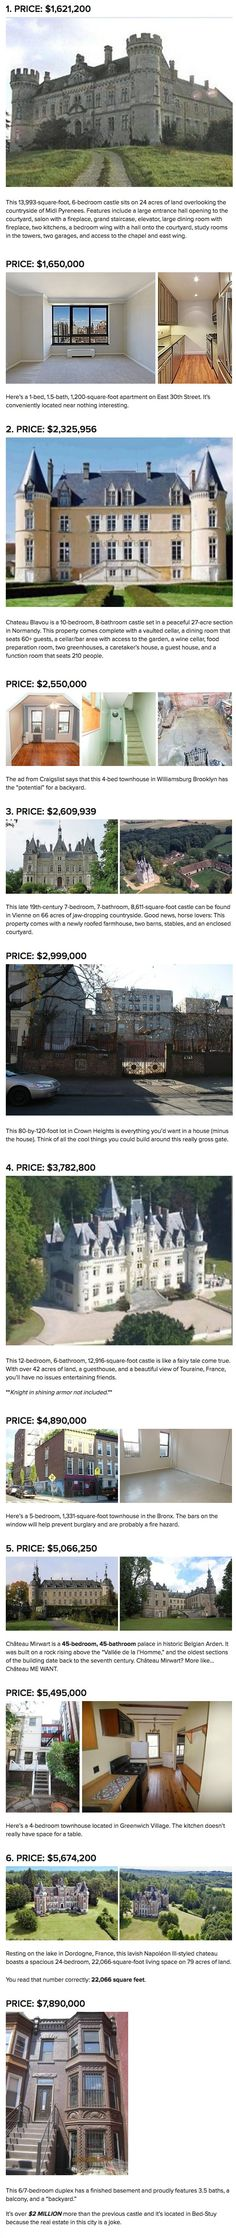 6 Castles That Cost Less Than An Apartment In NYC